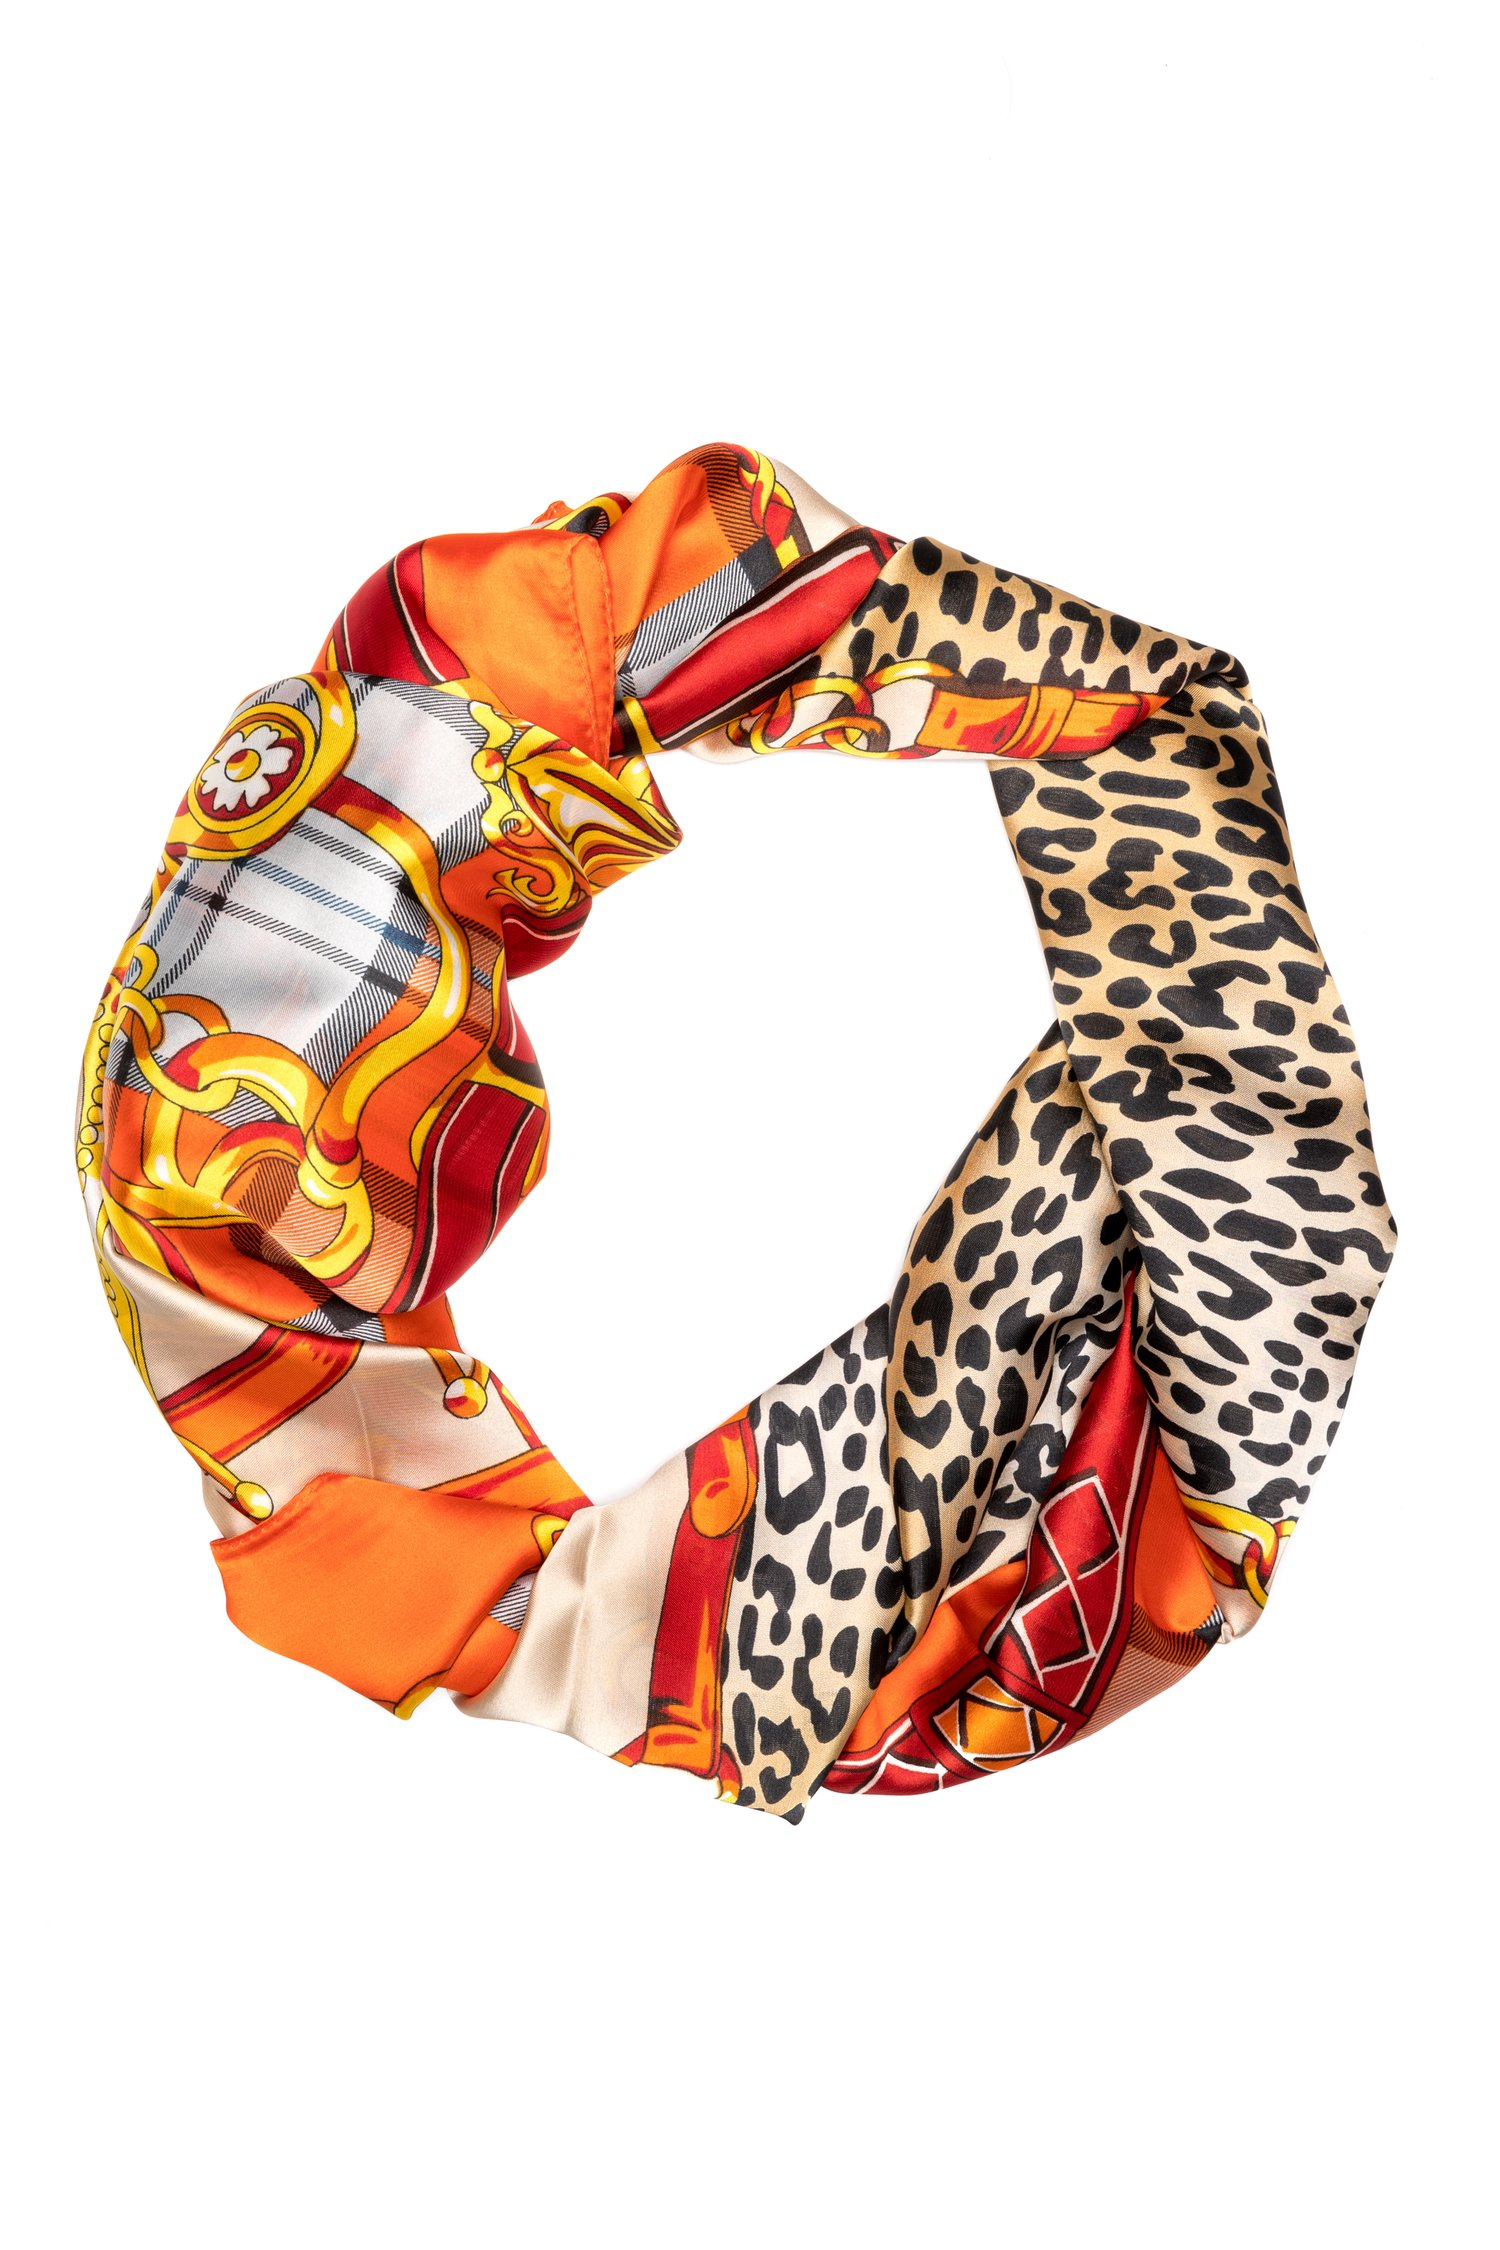 Esarfa orange cu animal print si detalii fashion thumbnail